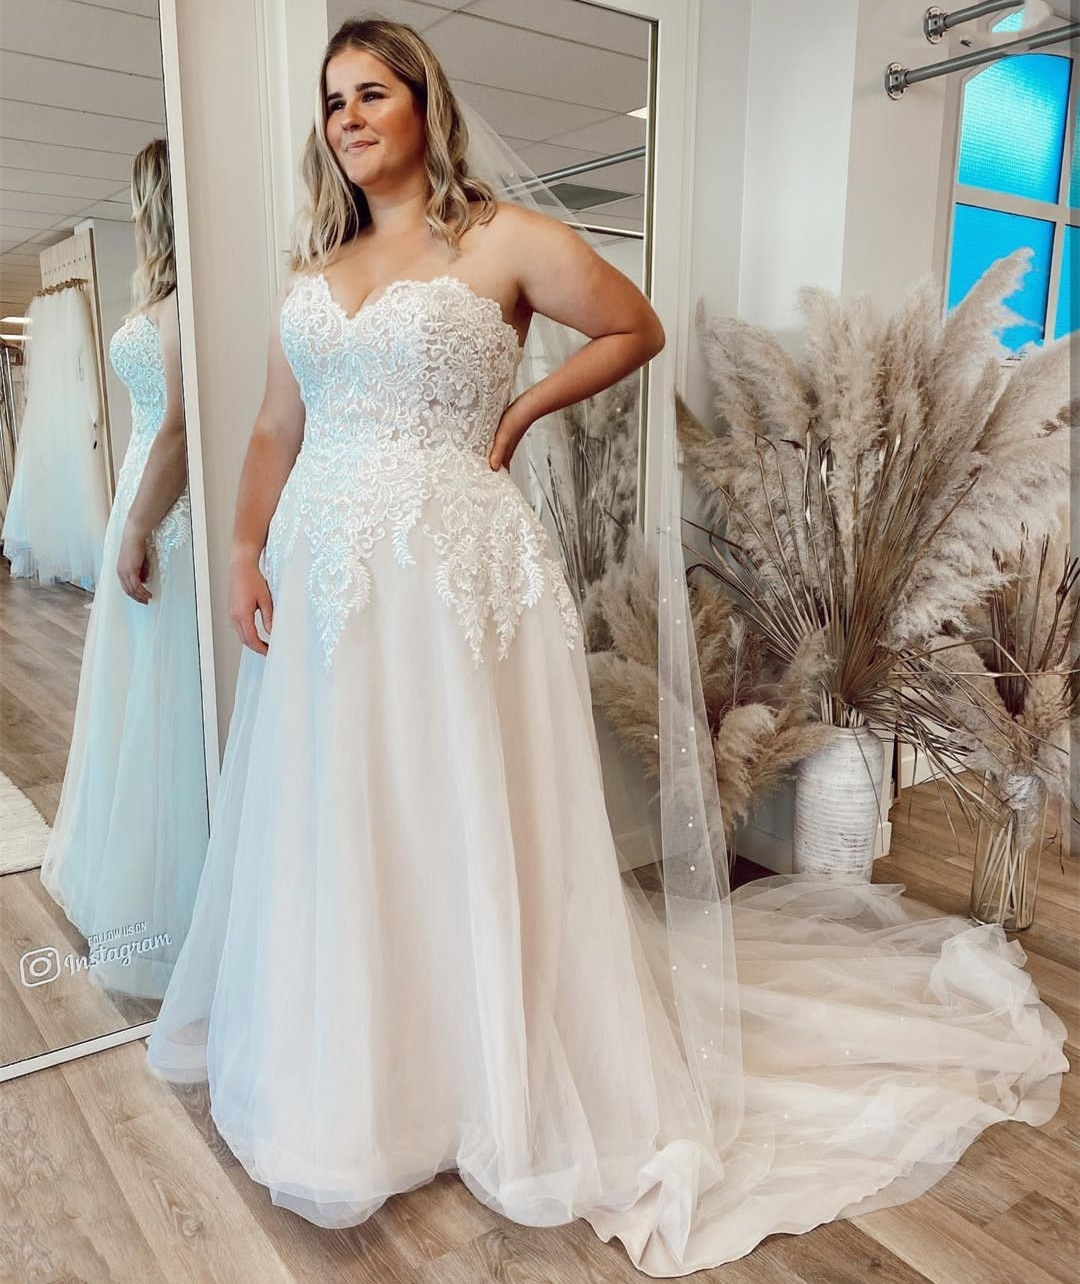 Get Plus Size Wedding Dress Floor Length Sleeveless Bridal Gowns Lace Appliques Sweep Train Crystal Beading Big For Lady Vintage